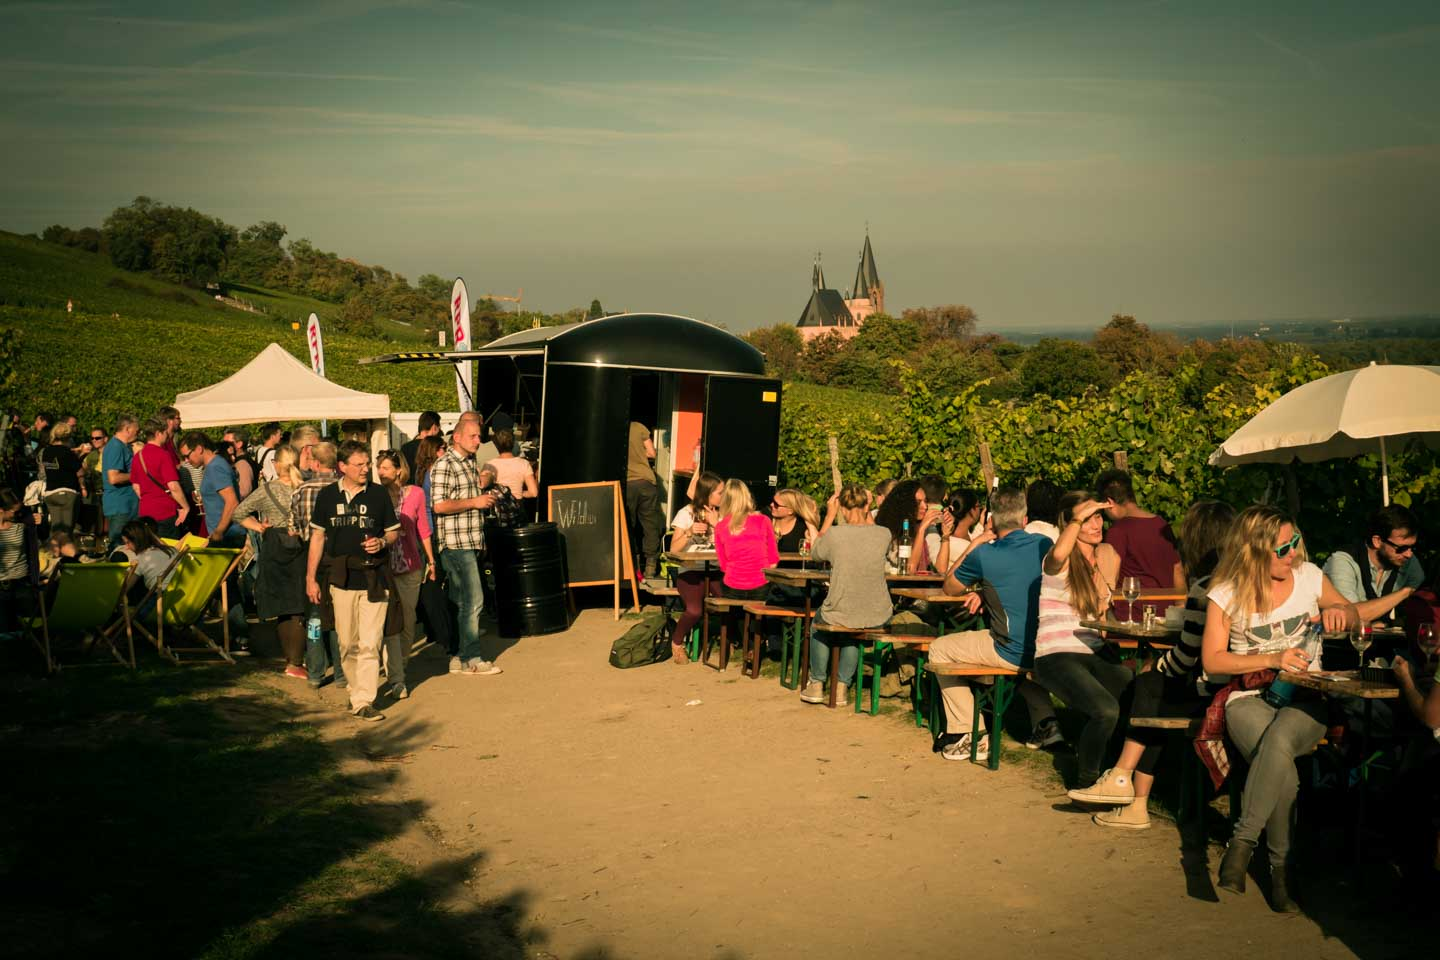 Food booth at the Gourmet Hike / Schlemmerwanderung in Oppenheim 2015